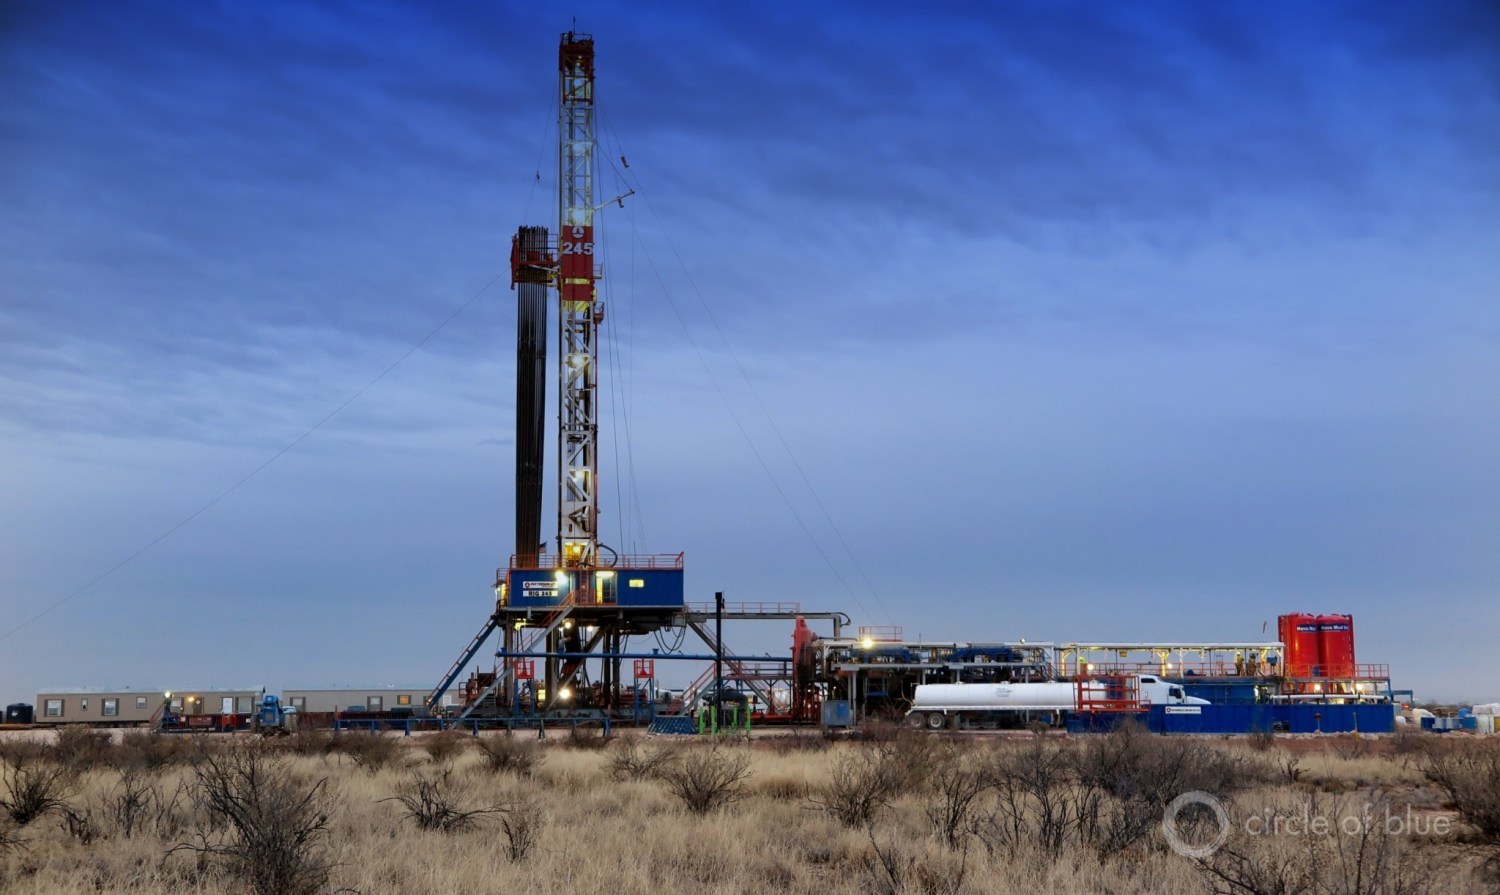 A Drilling Rig Explores For Oil In Southeast New Mexicos Permian Basin One Of The Most Productive Sources Of Shale Oil In The U S More Than 80 Rigs Now